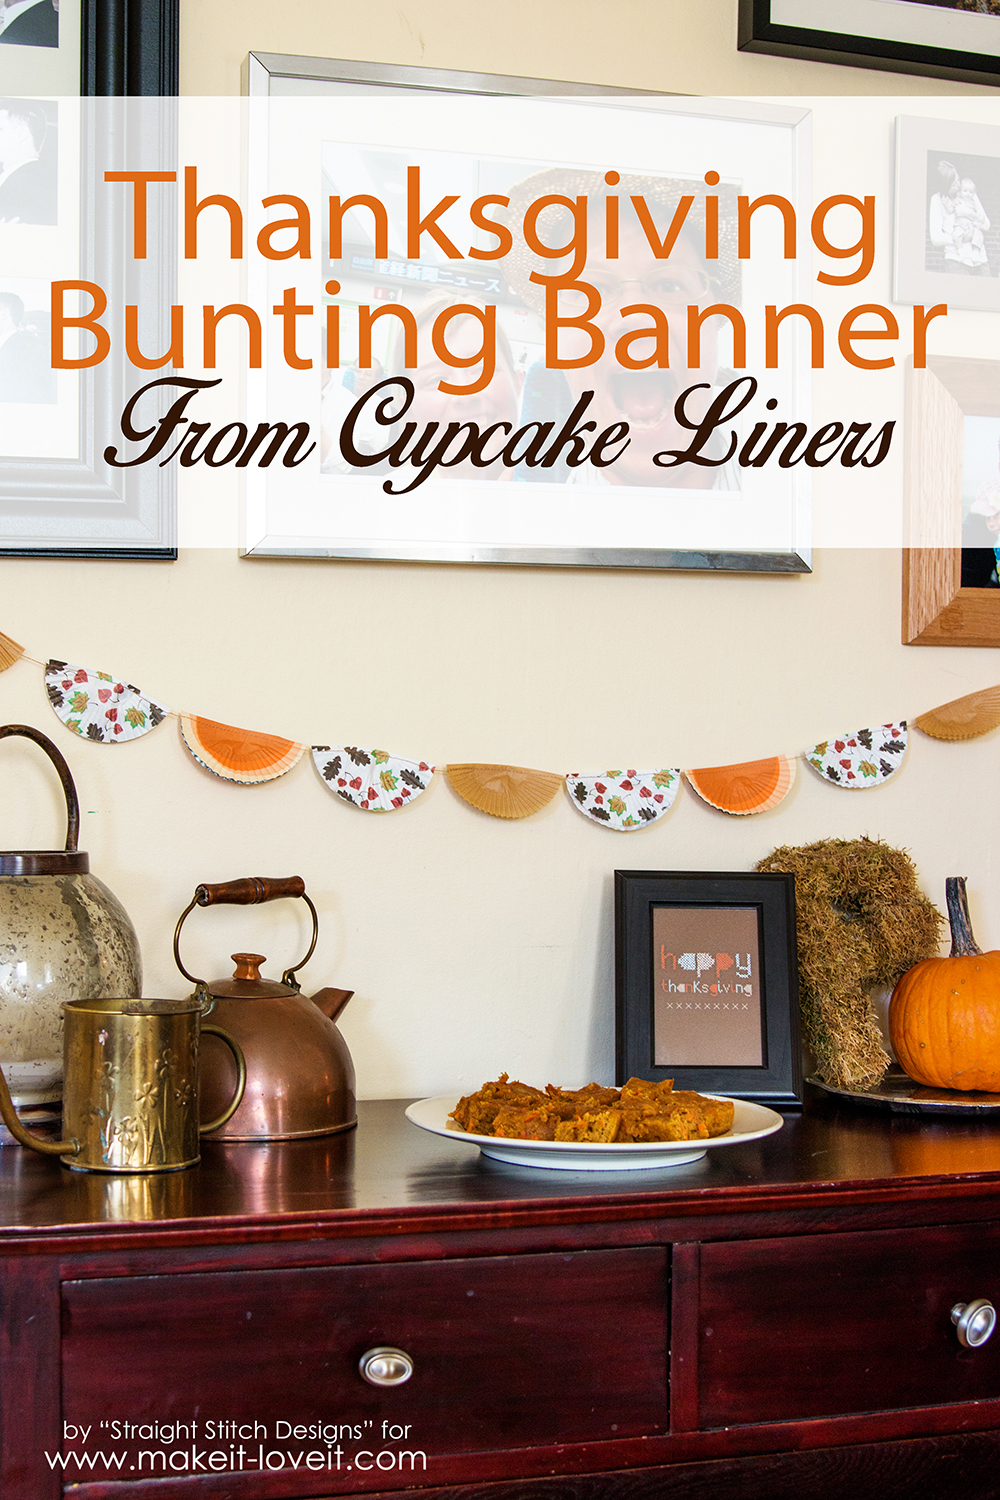 Thanksgiving bunting banner…from cupcake liners